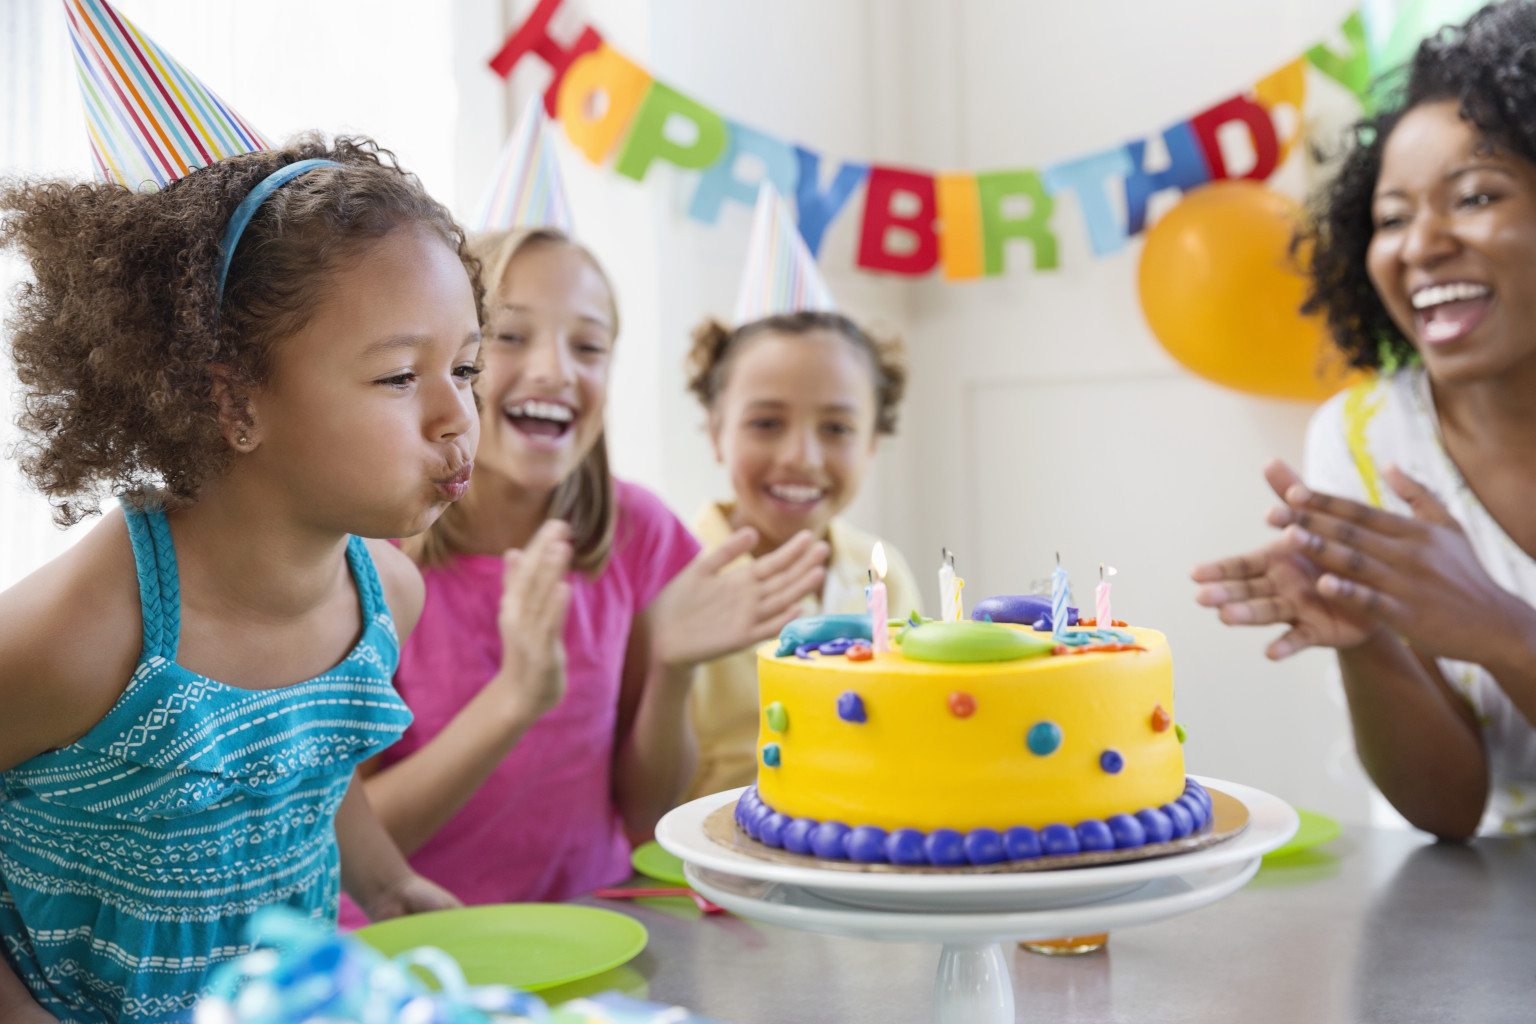 Best ideas about Kids Birthday Party . Save or Pin 5 Hot Trends for Kids Birthday Parties Now.